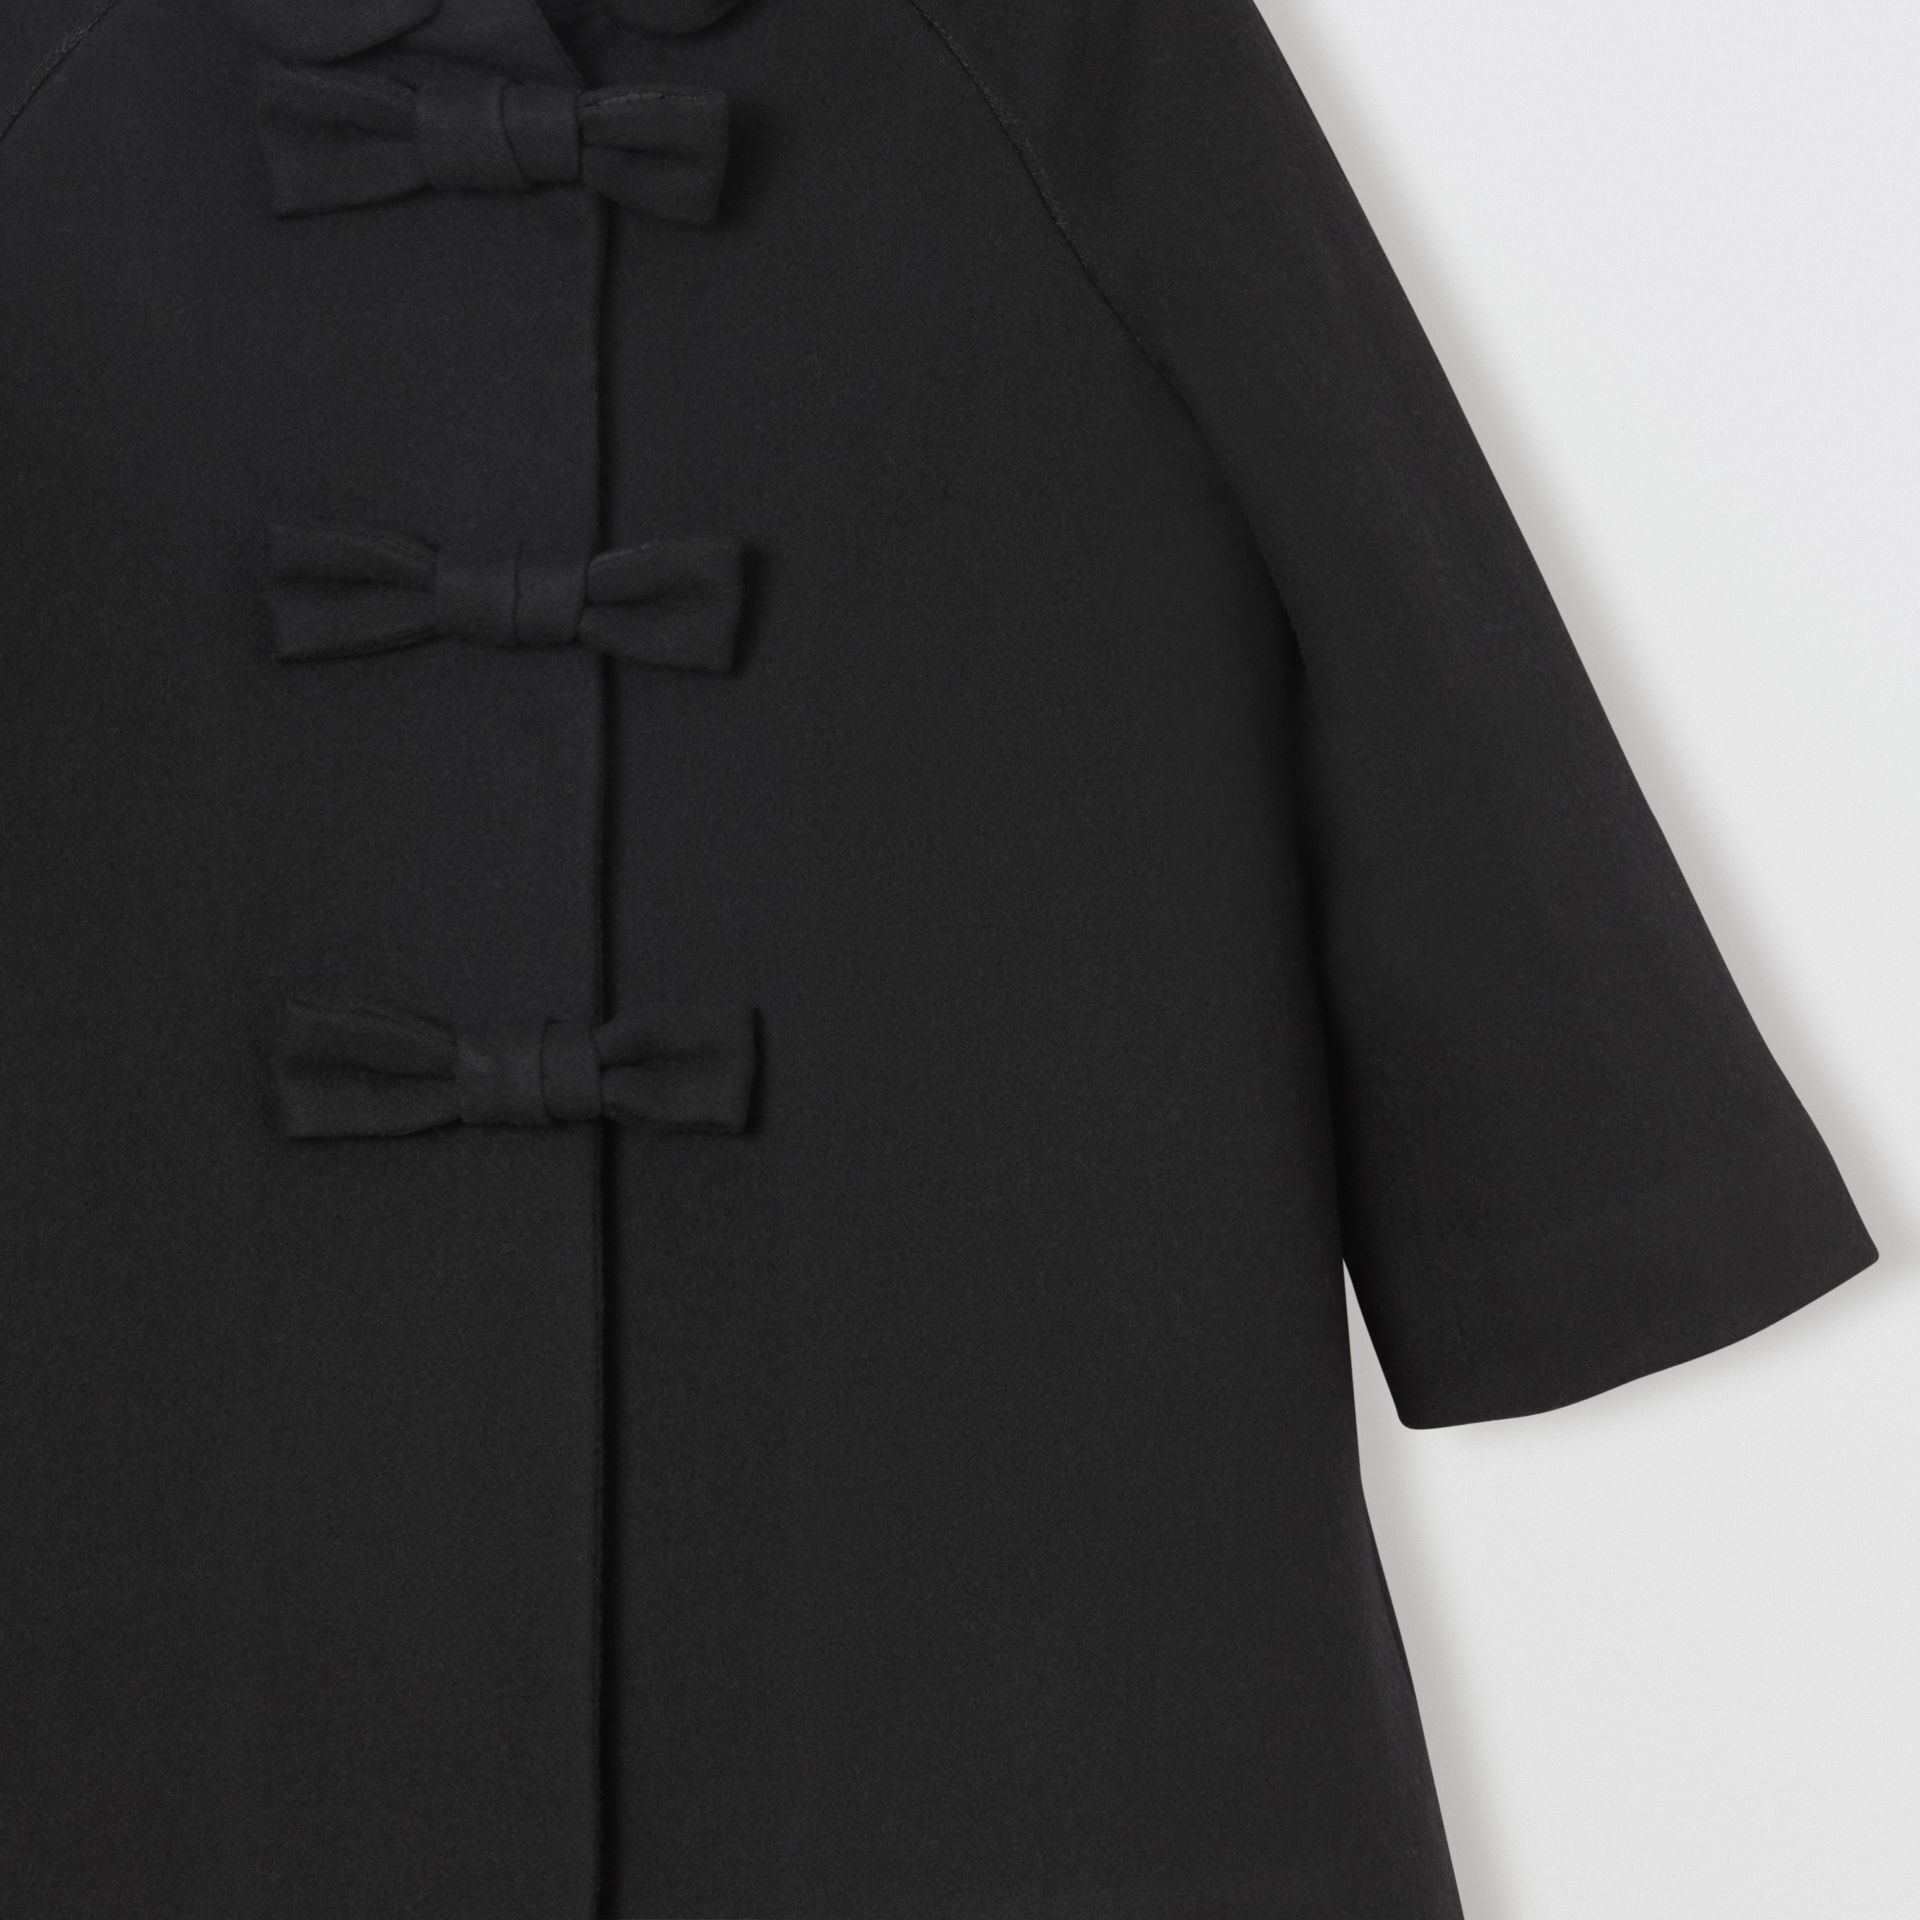 Embellished Melton Wool Swing Coat in Black | Burberry United Kingdom - gallery image 3